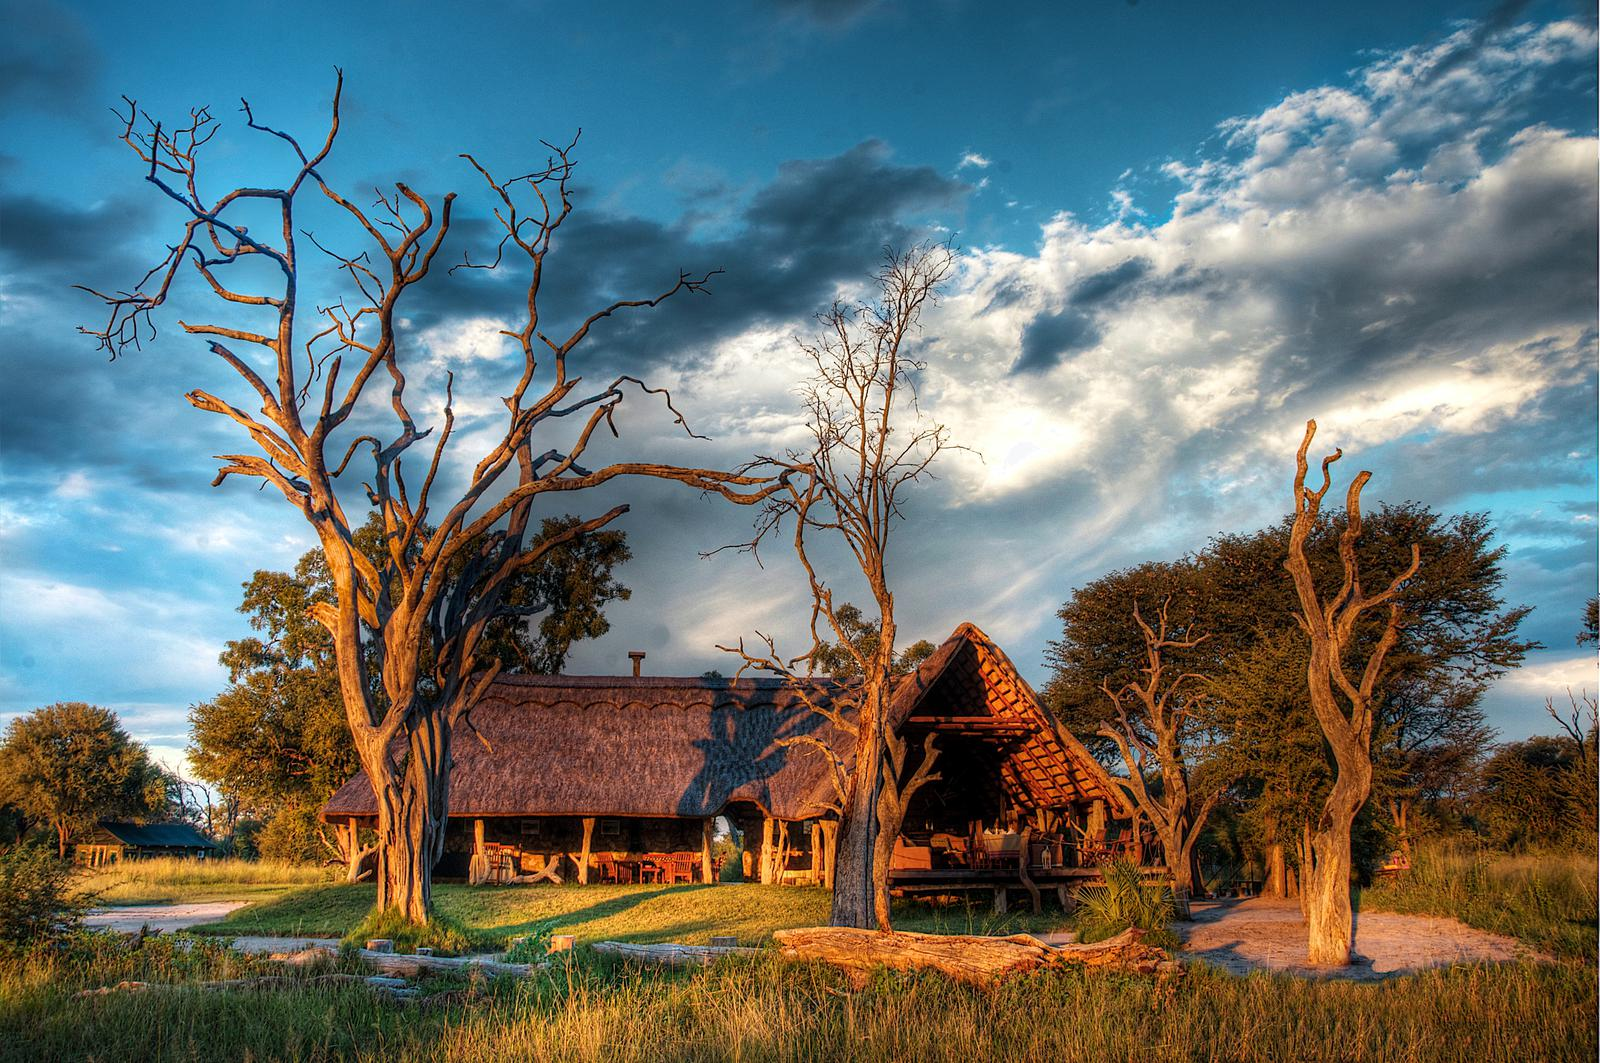 Zimbabwe named by new york times as top 20 place to visit in 2015